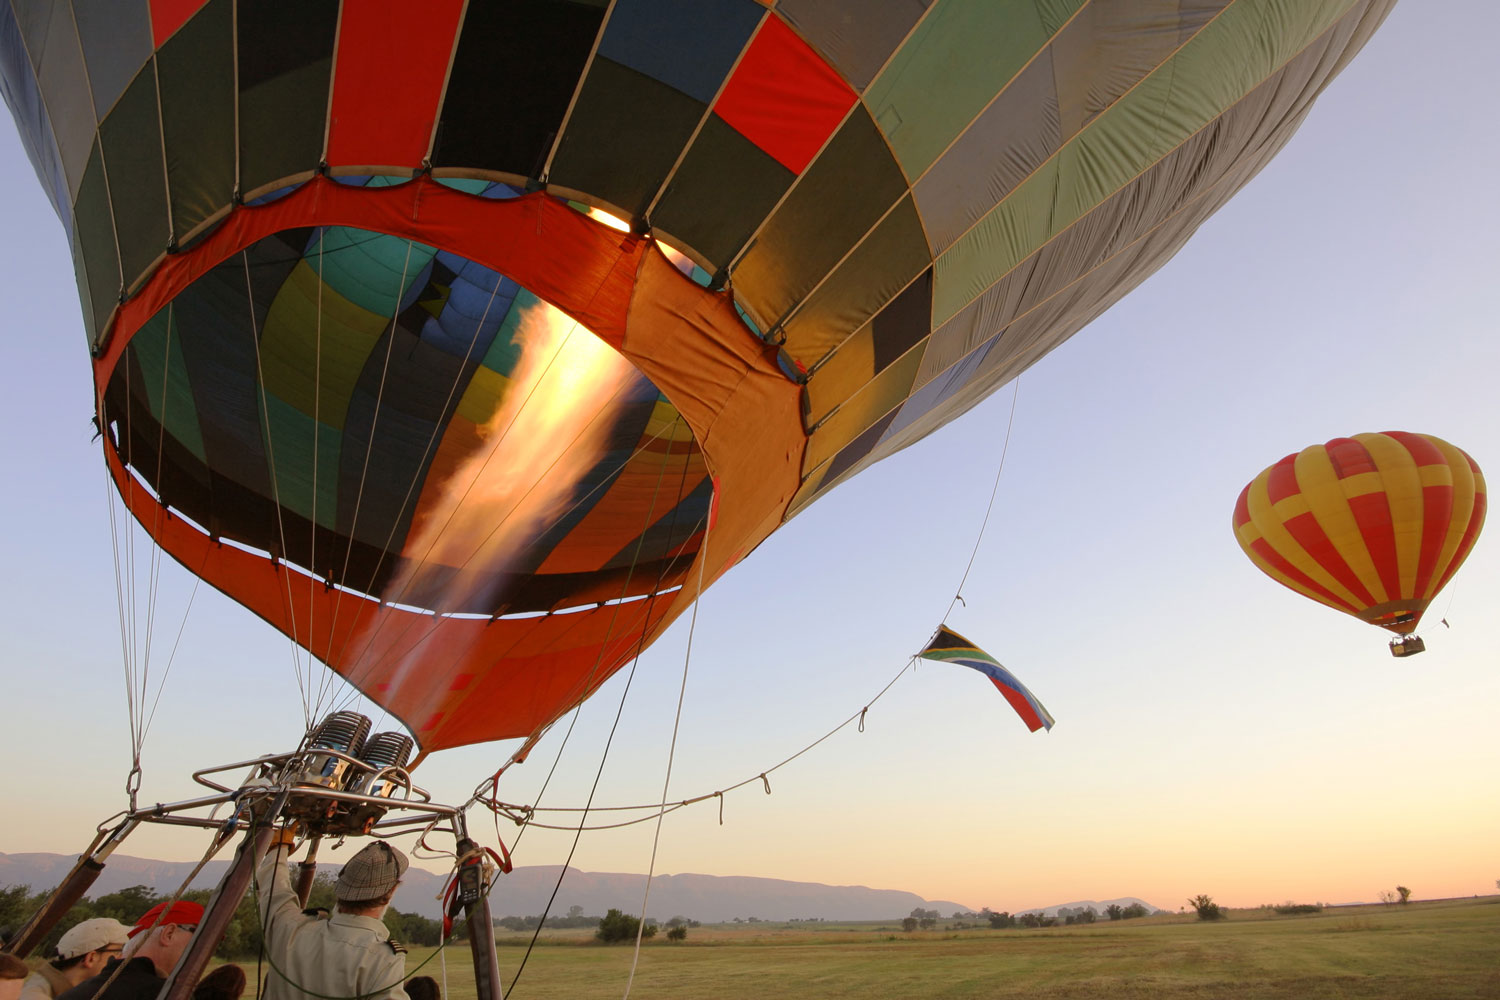 Hot air balloon about to take off